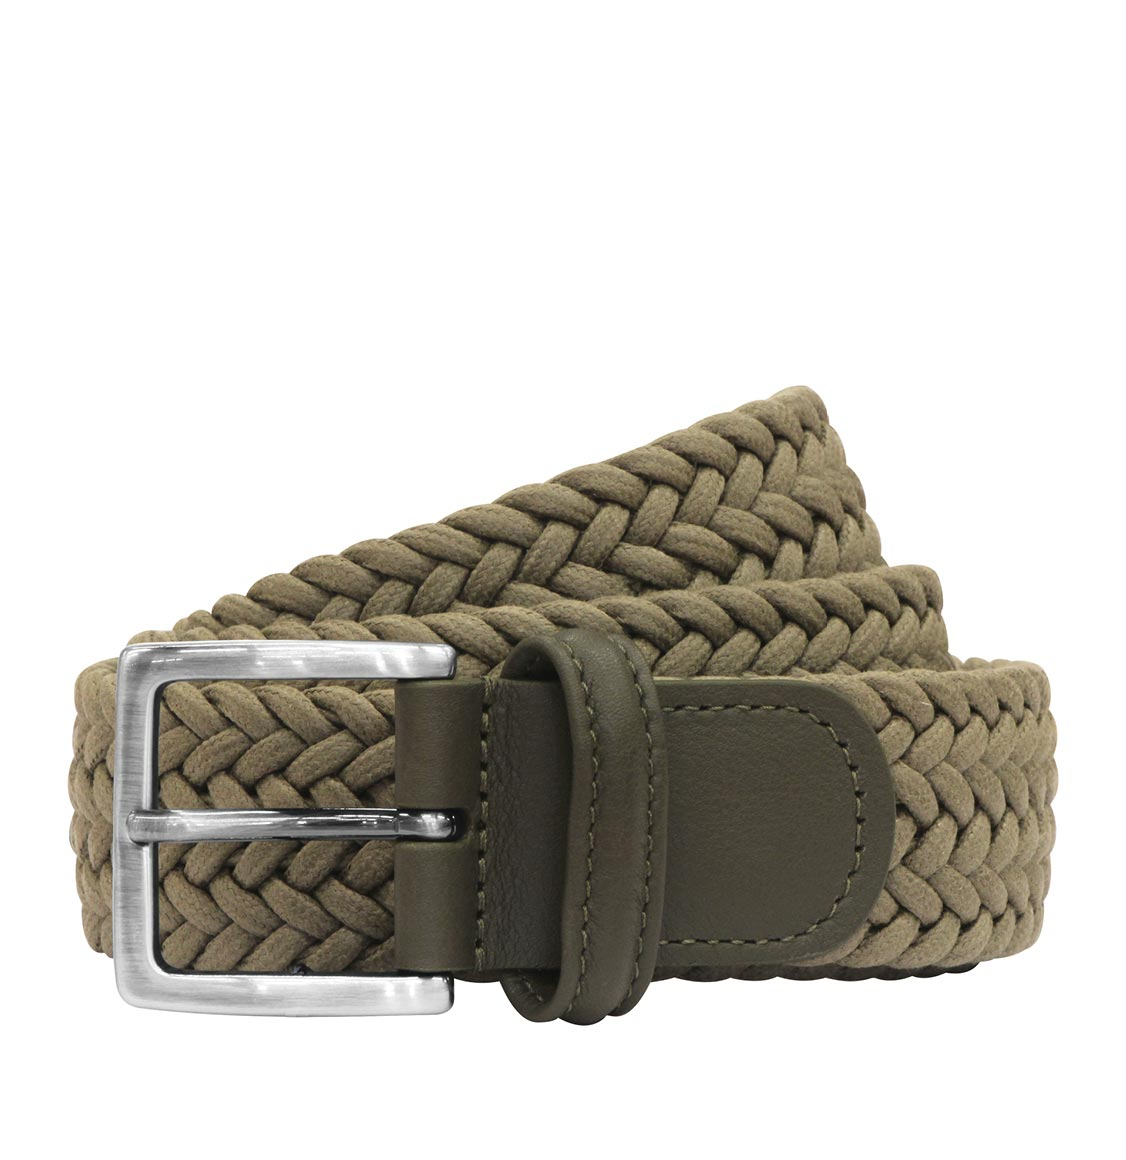 Anderson's Waxed Leather-Trimmed Woven Belt Green